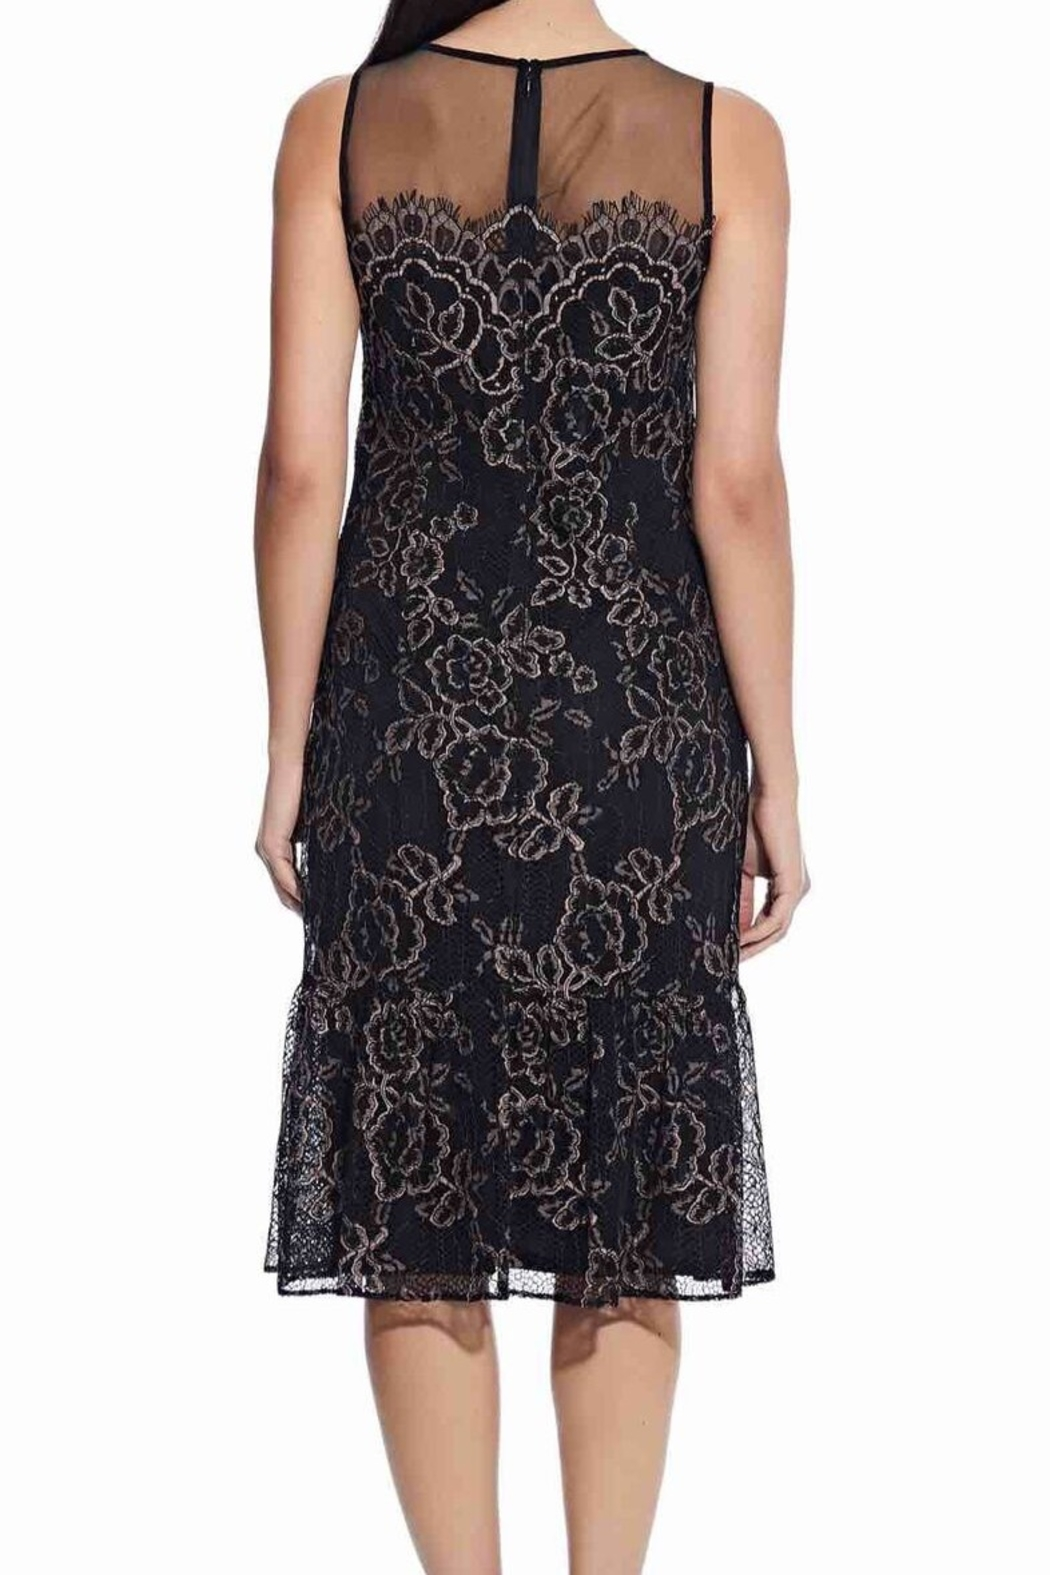 Adrianna Papell Maria Lace Midi Dress - Side Cropped Image